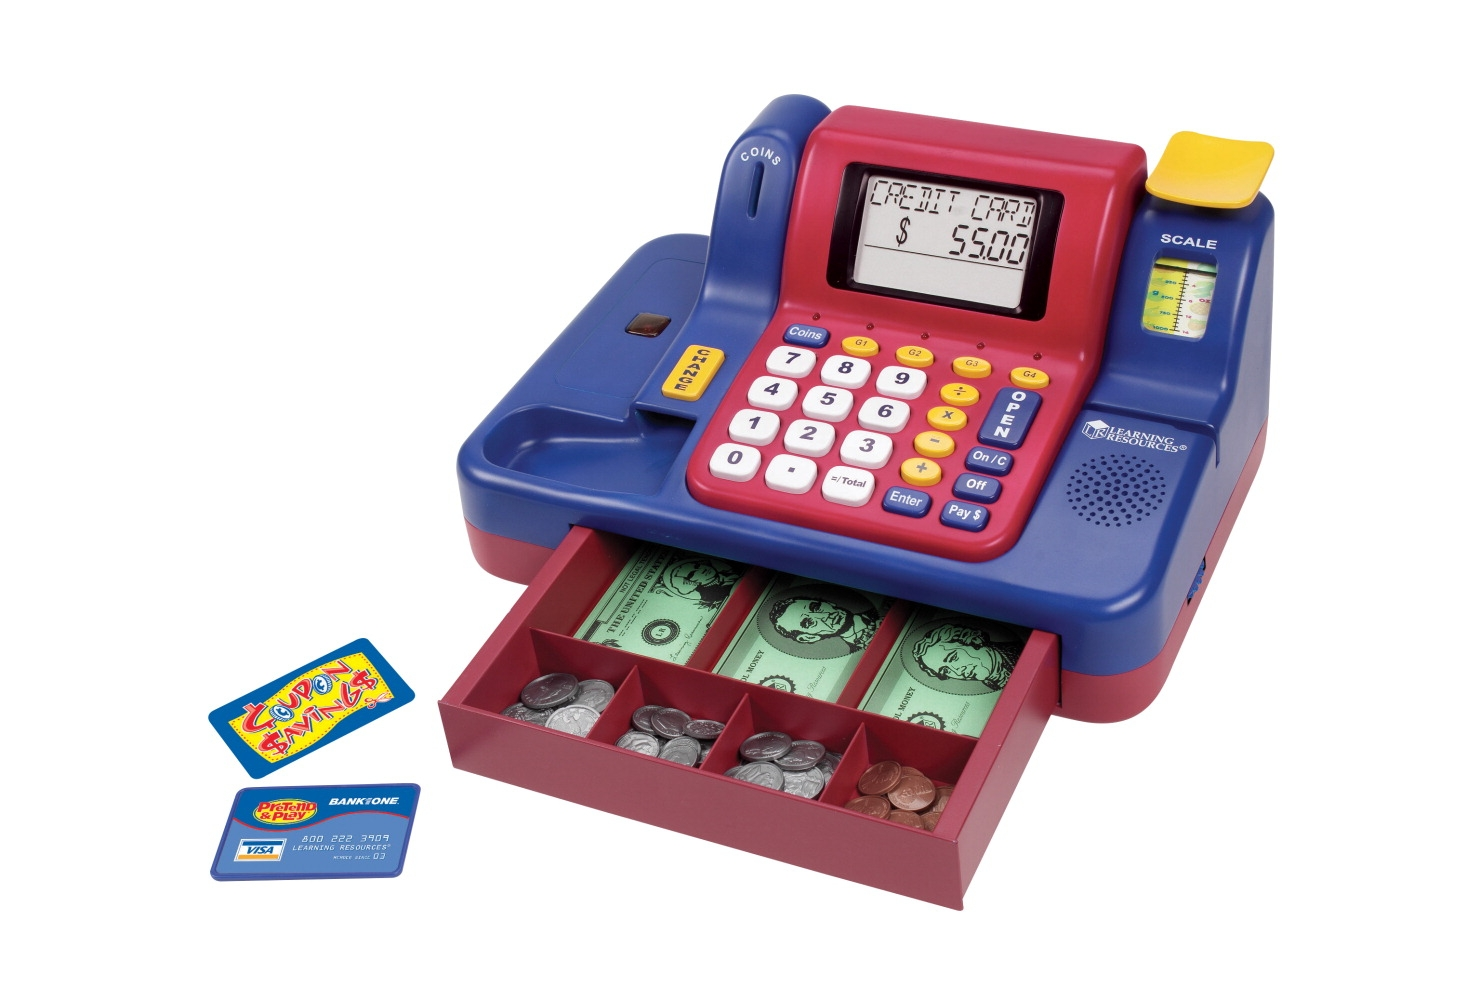 Learning Resources Pretend And Play Teaching Cash Register - 076819 - Facilities Management Table Cloth Tire Cover Lighting Tire Covers Black And White Plain Tire Covers 076819